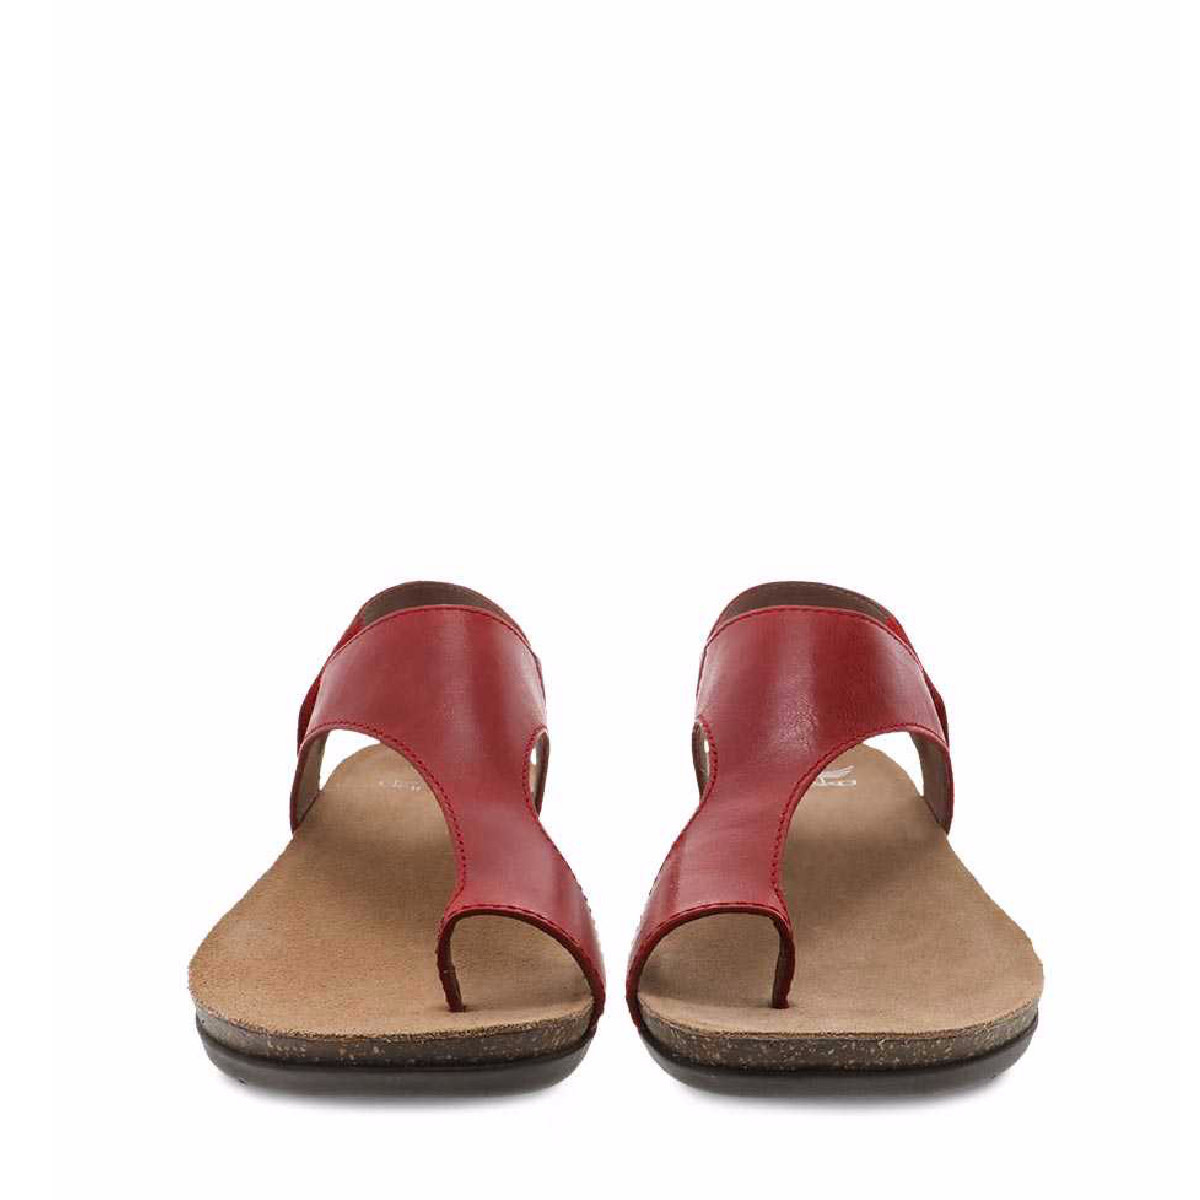 Dansko Dansko Reese Waxy Burnished Red